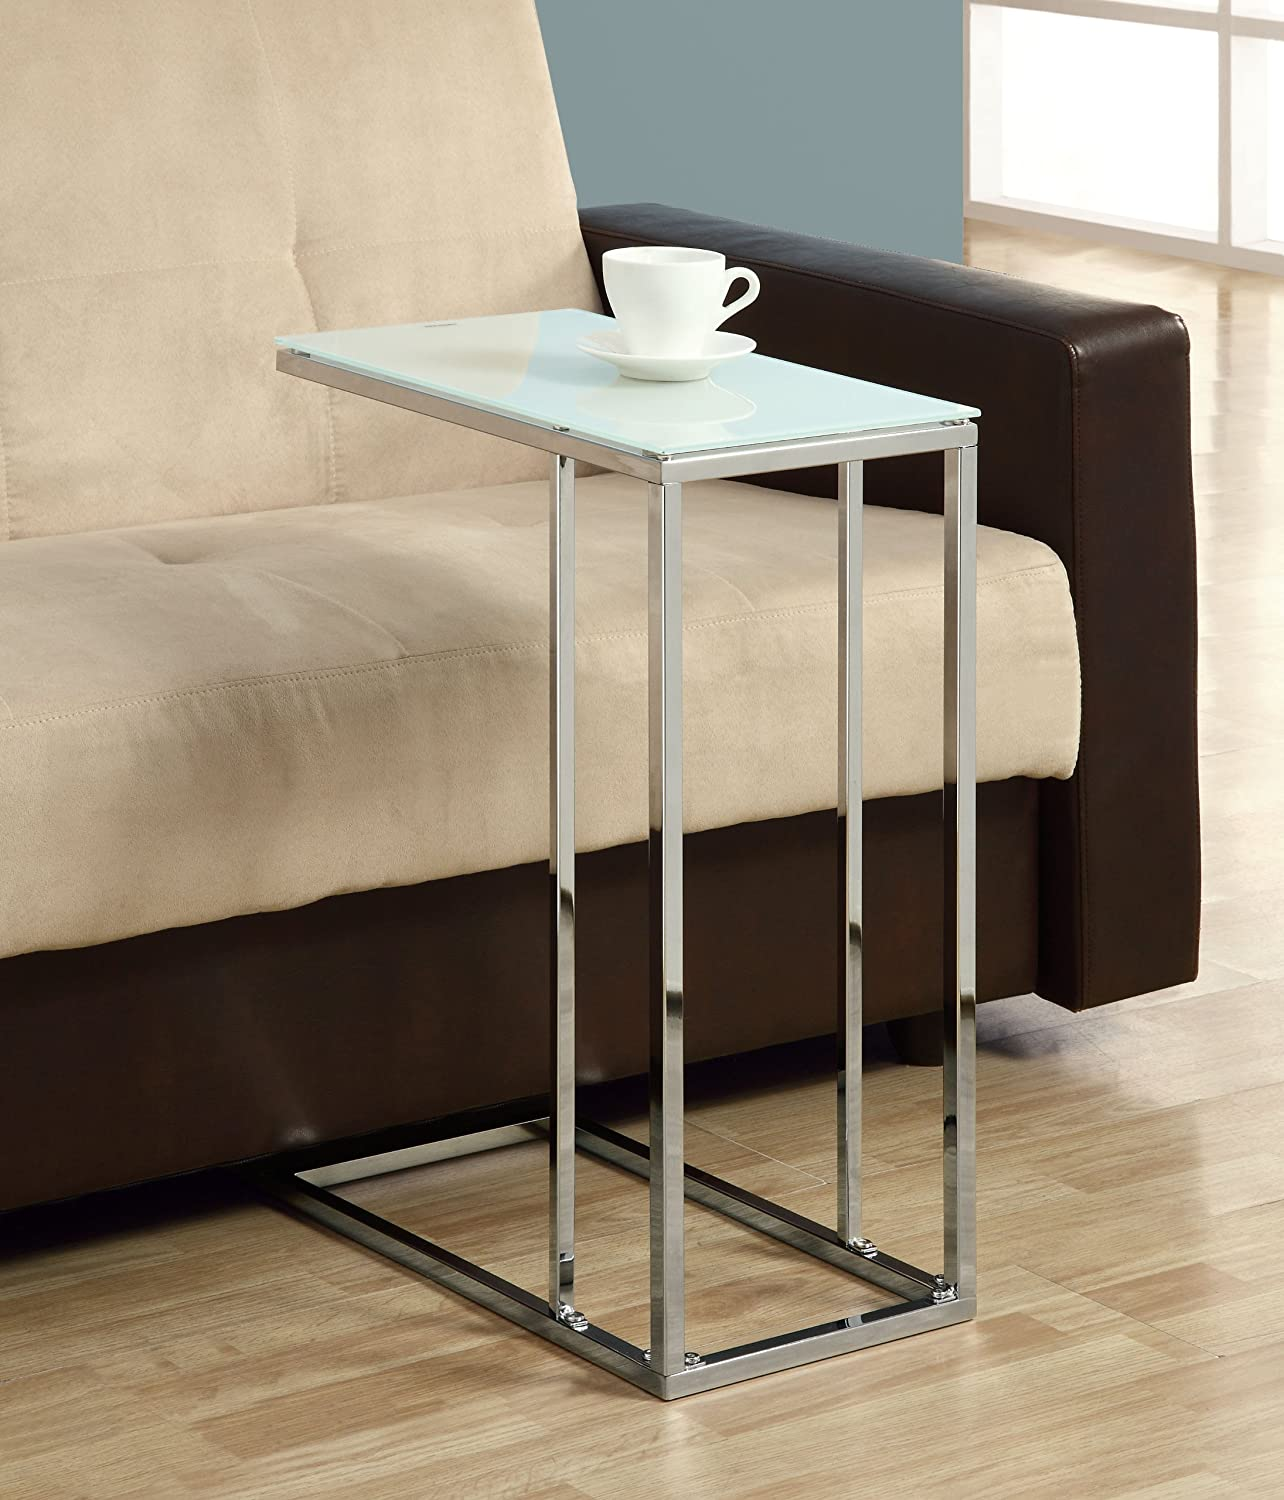 new living room coffee end table slide side metal glass top chrome ebay